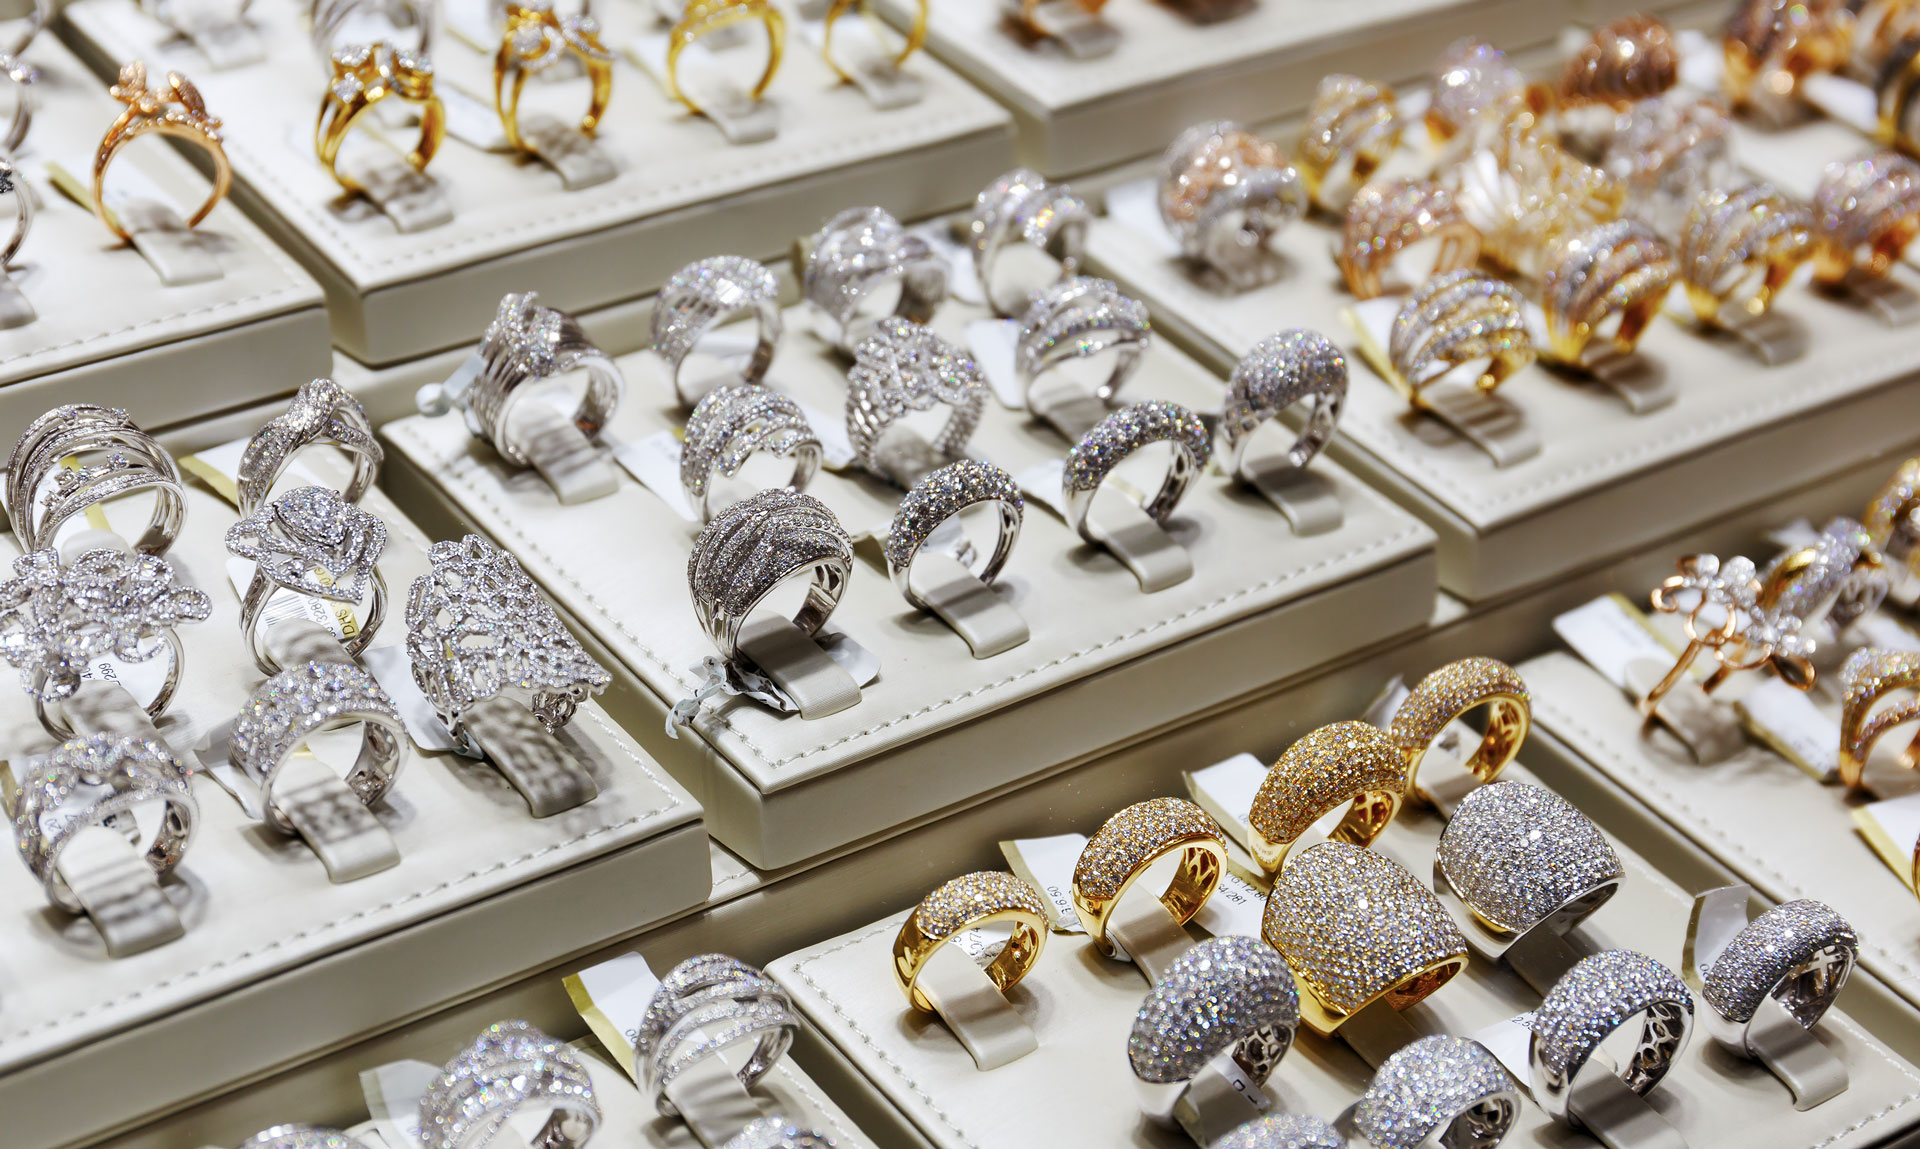 mixture of gold and diamond jewelry on display